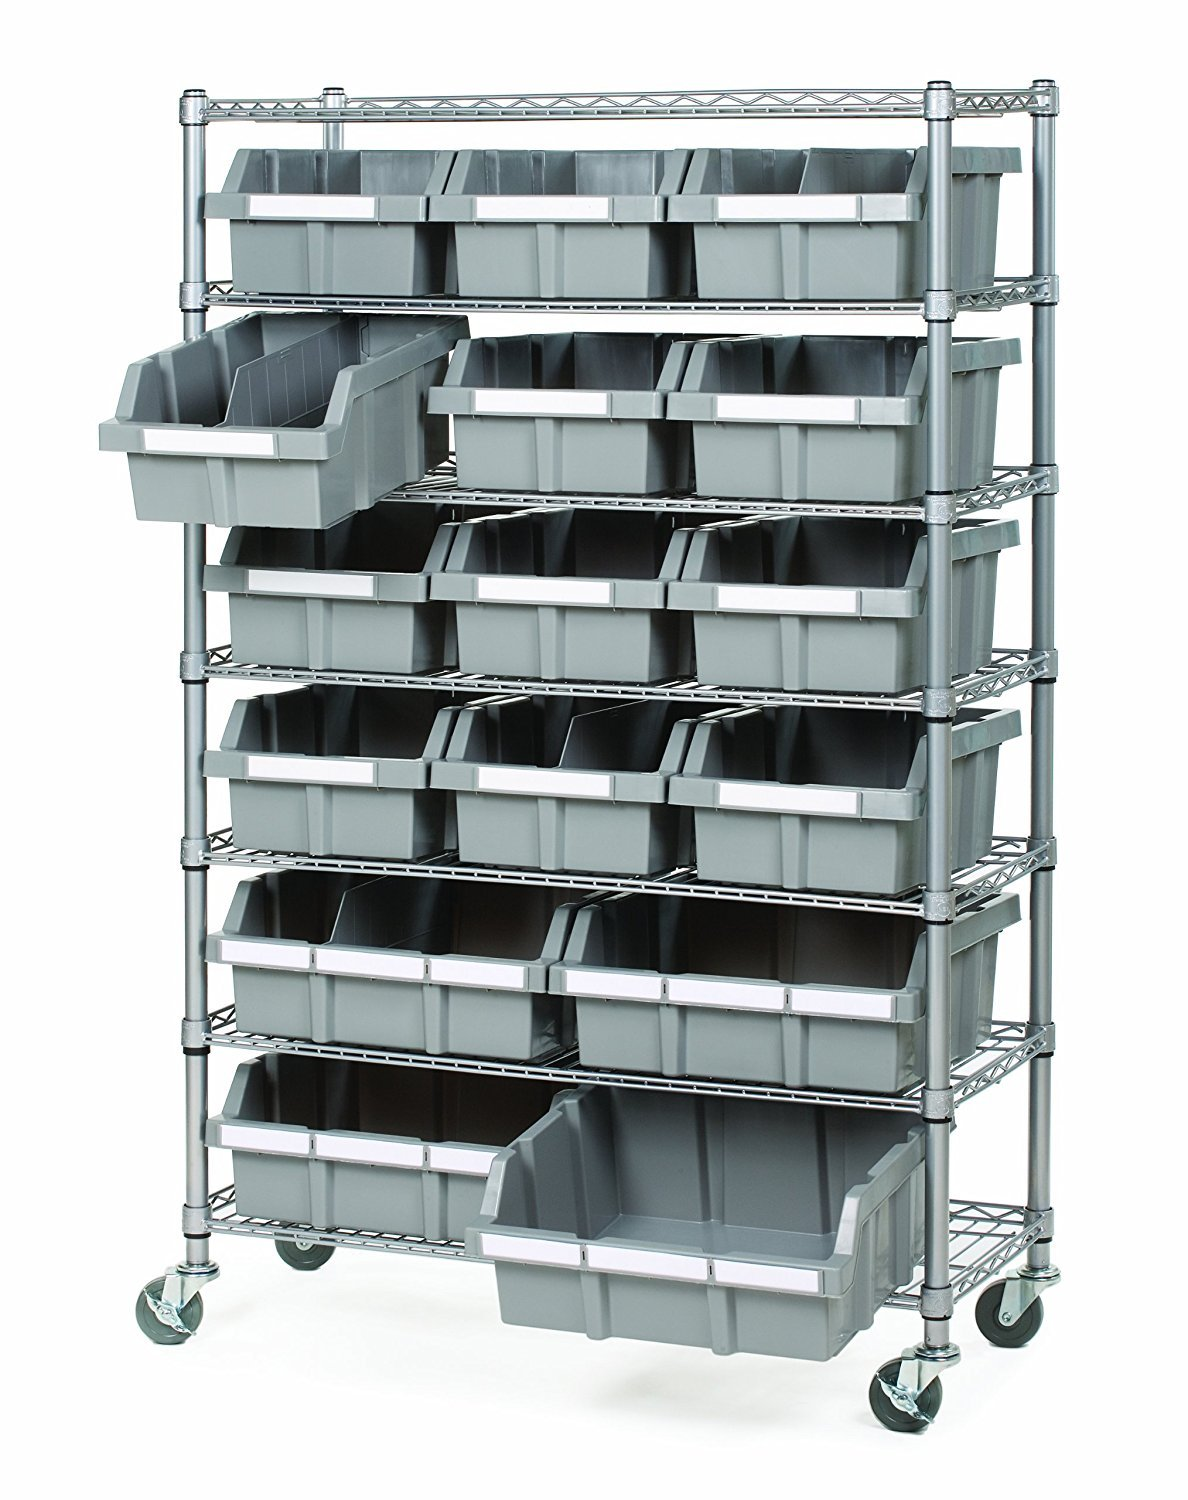 Seville Classics Commercial 7-Tier Platinum/Gray NSF 16-Bin Rack Storage System by Seville Classics